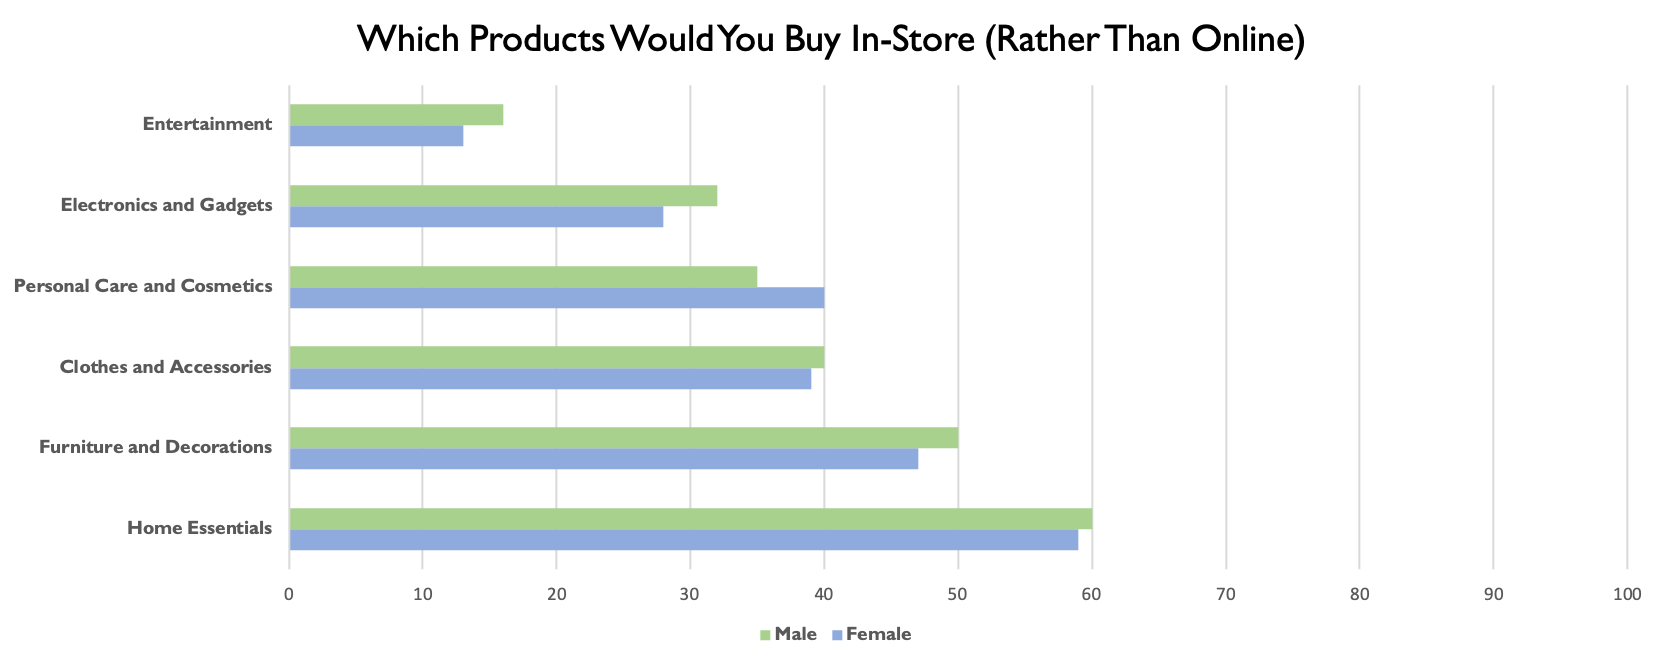 eCommerce vs in-store preferences